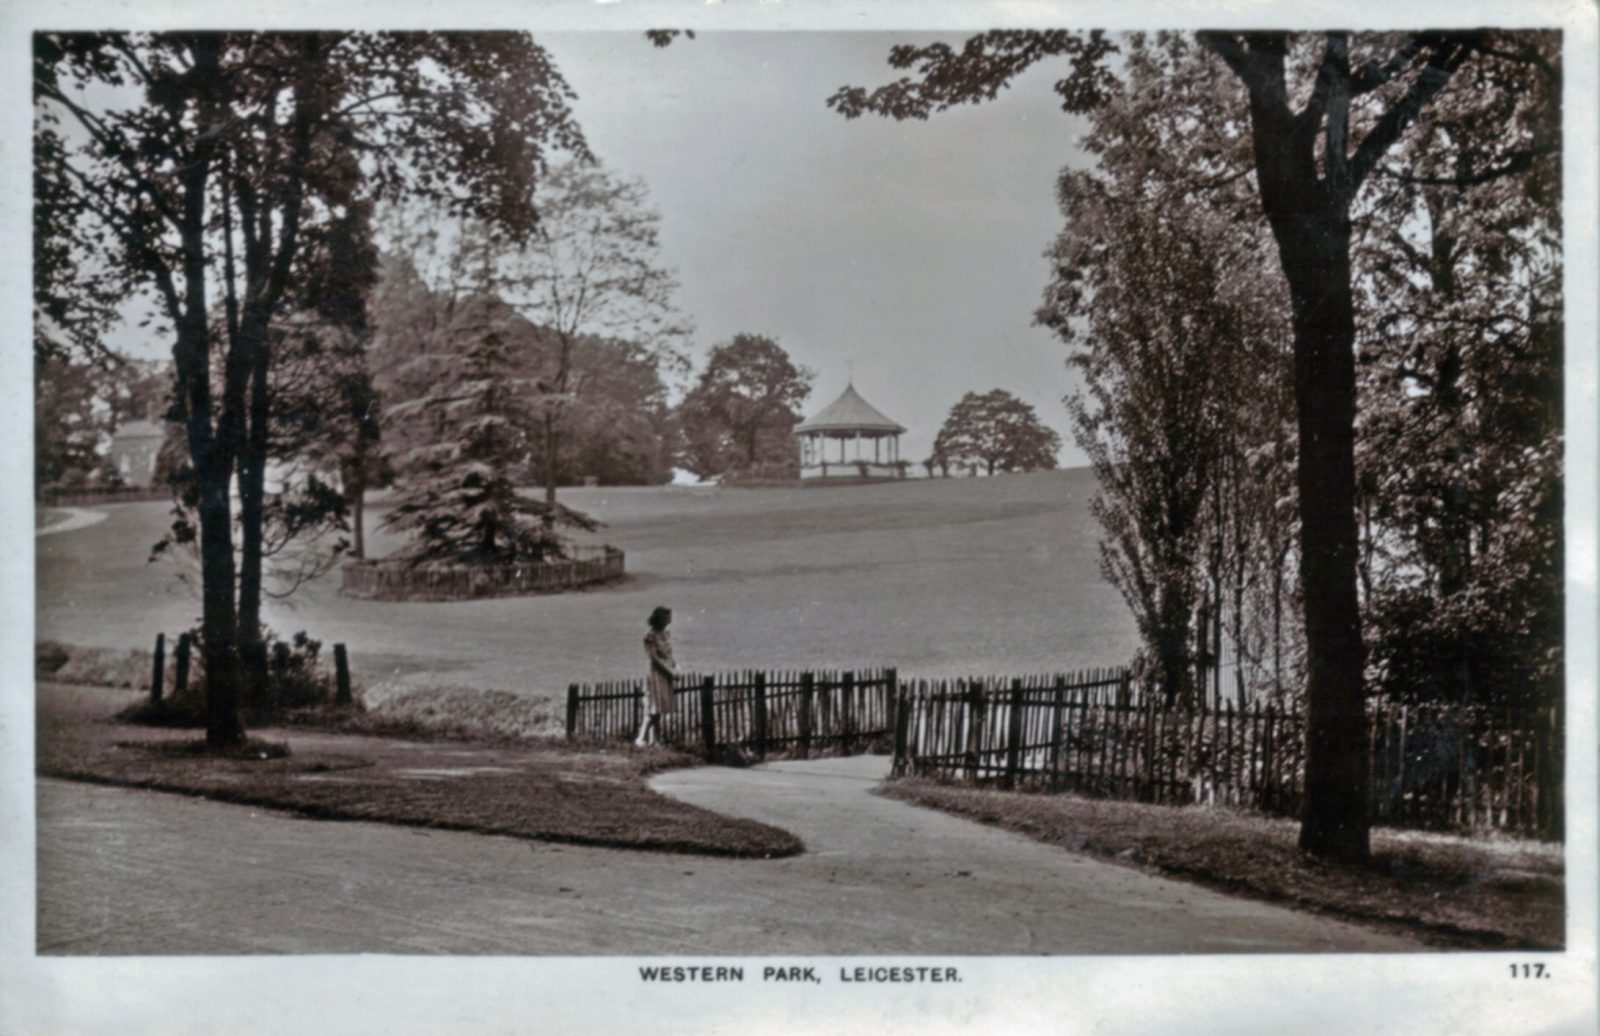 Western Park, Leicester. Undated: General view. Female figure on bridge. Bandstand in background. Franked 1954 (File:1088)